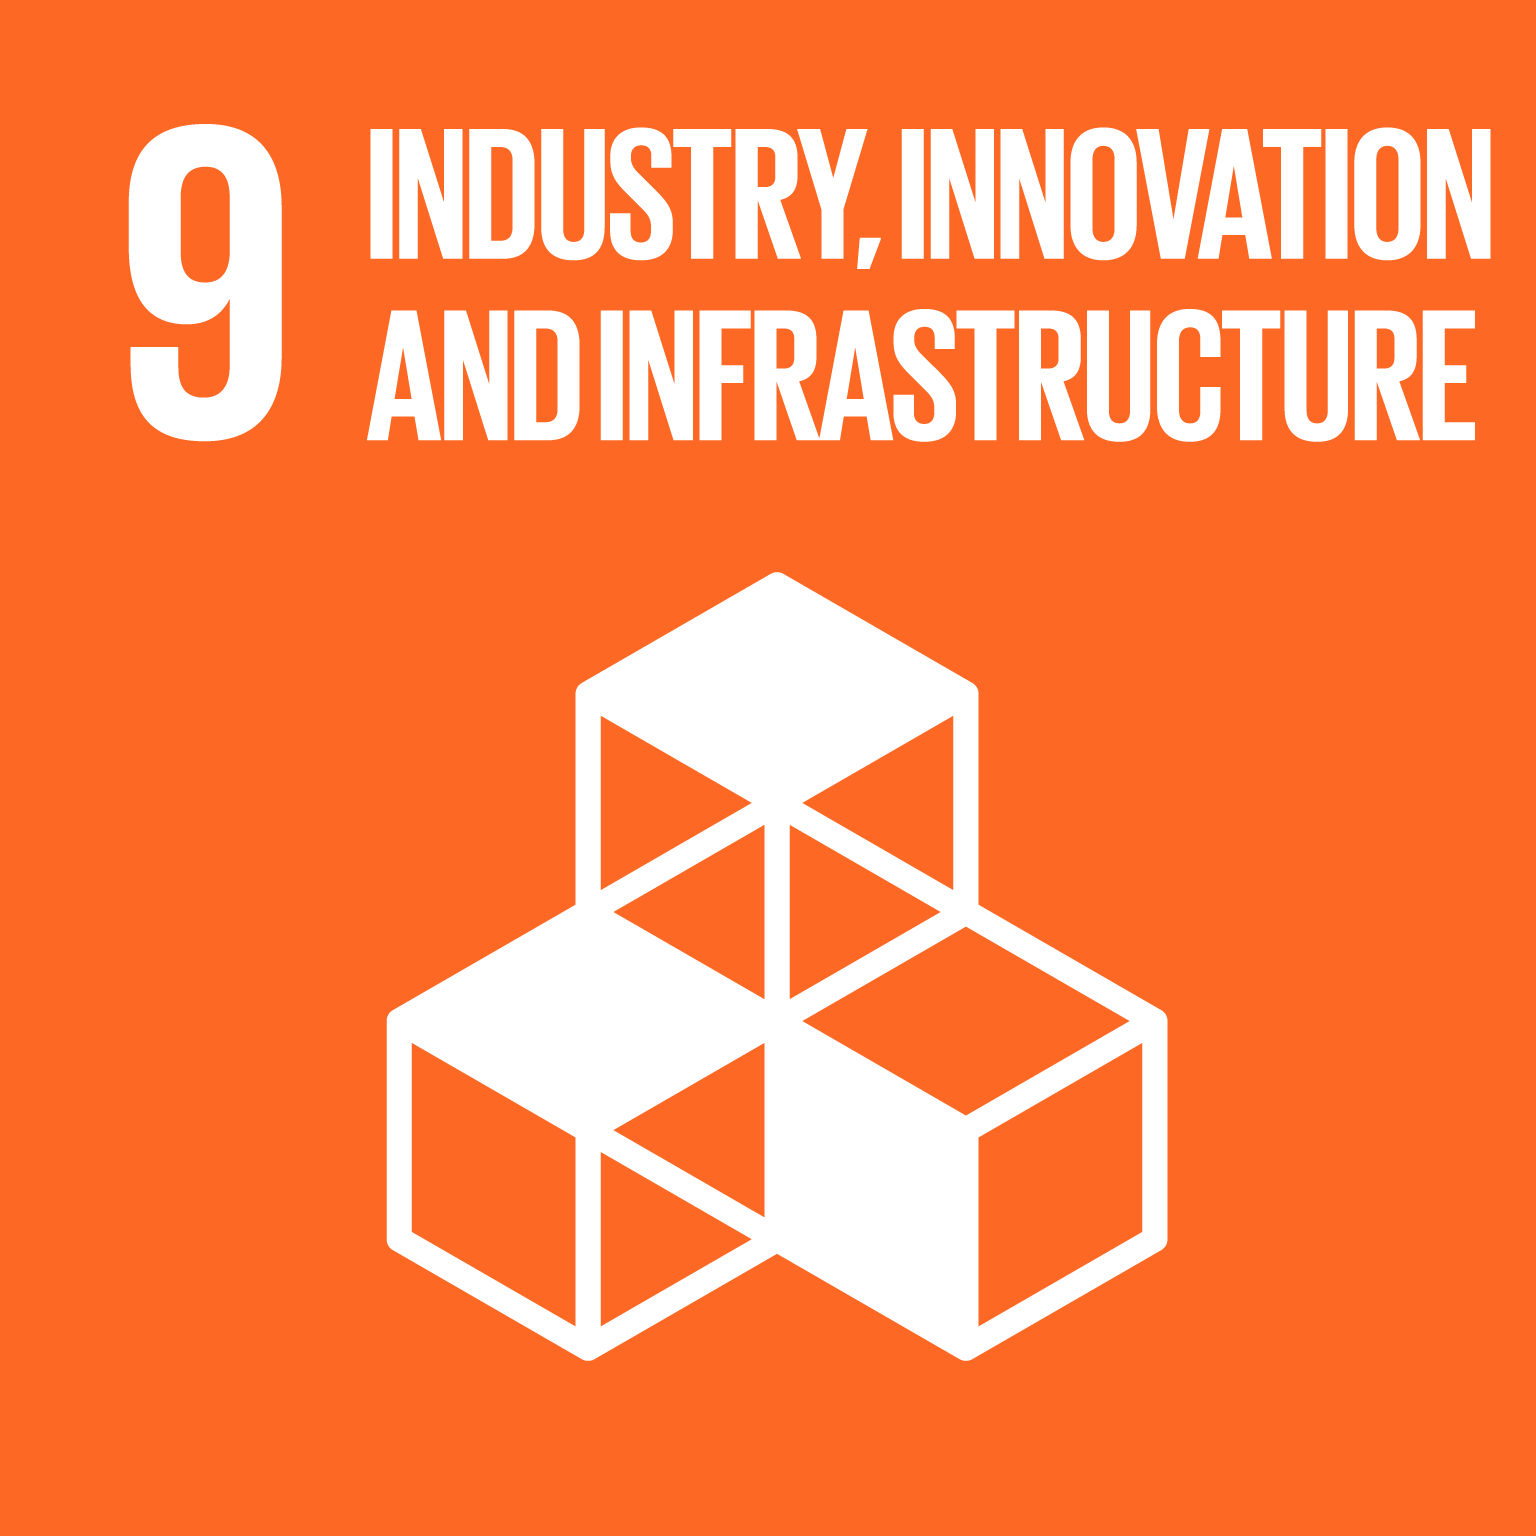 【SDGs logo】INDUSTRY, INNOVATION AND INFRASTRUCTURE